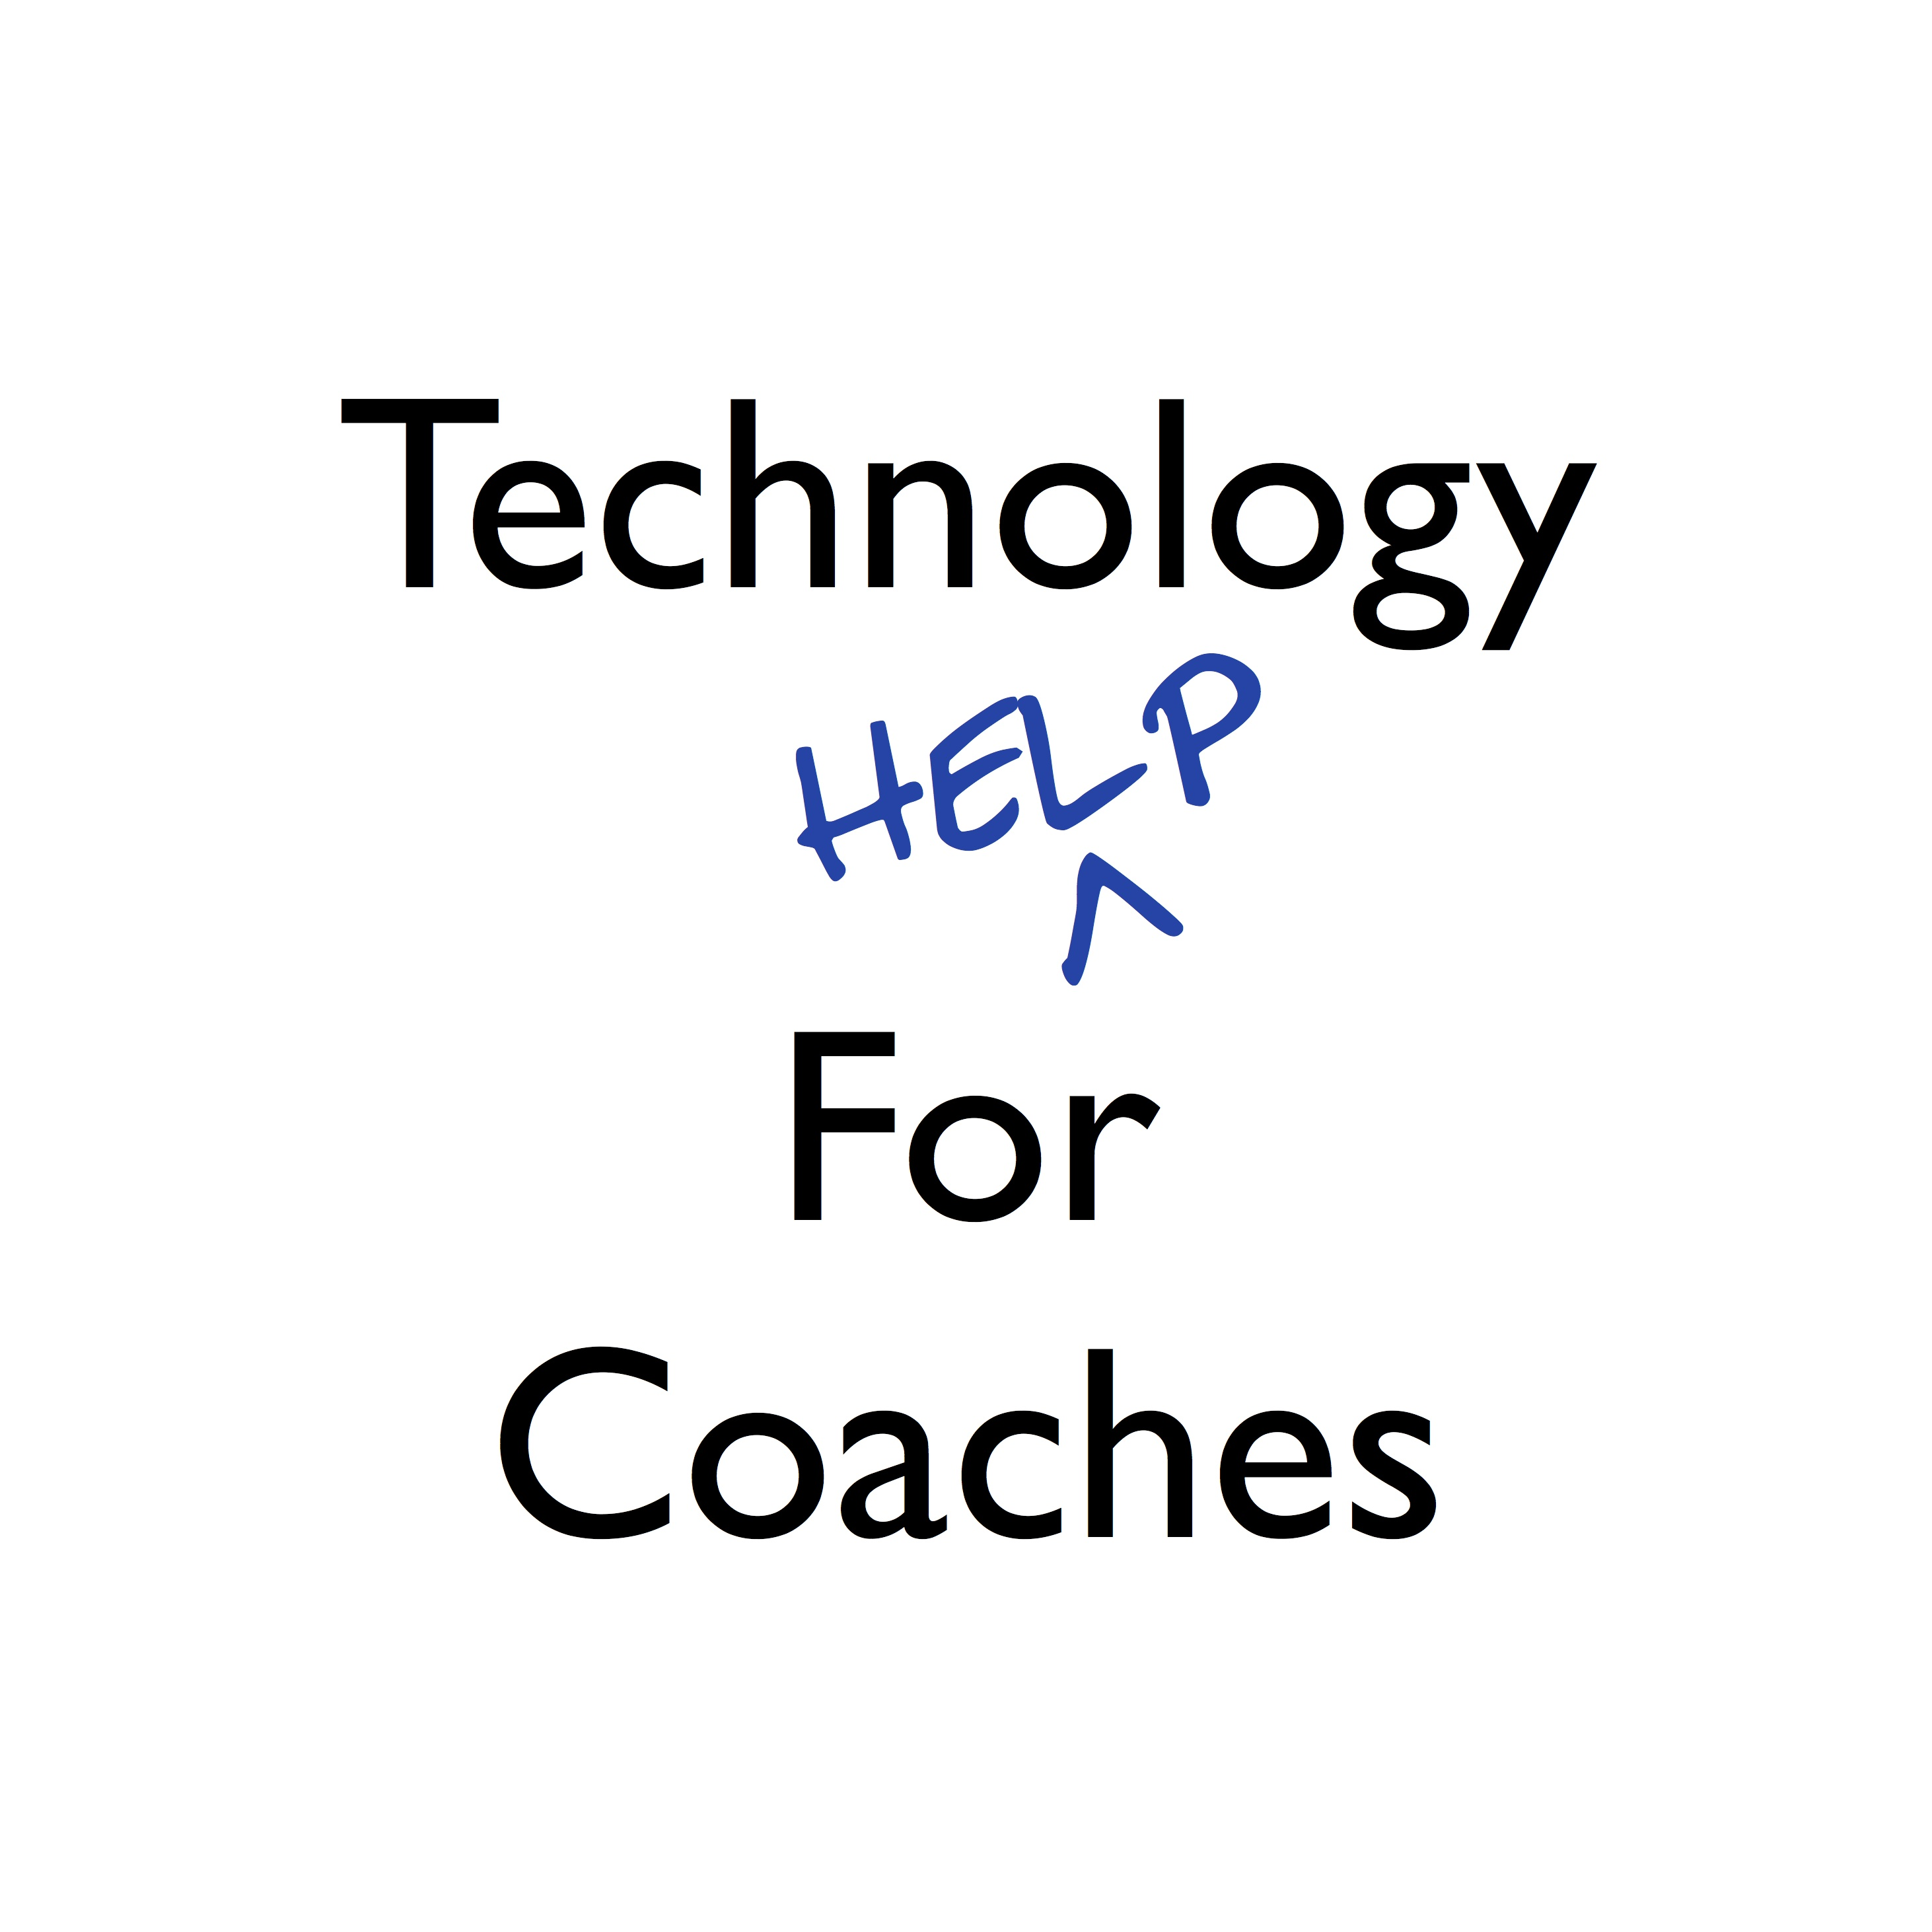 Technology for Coaches - Technology Help For Coaches